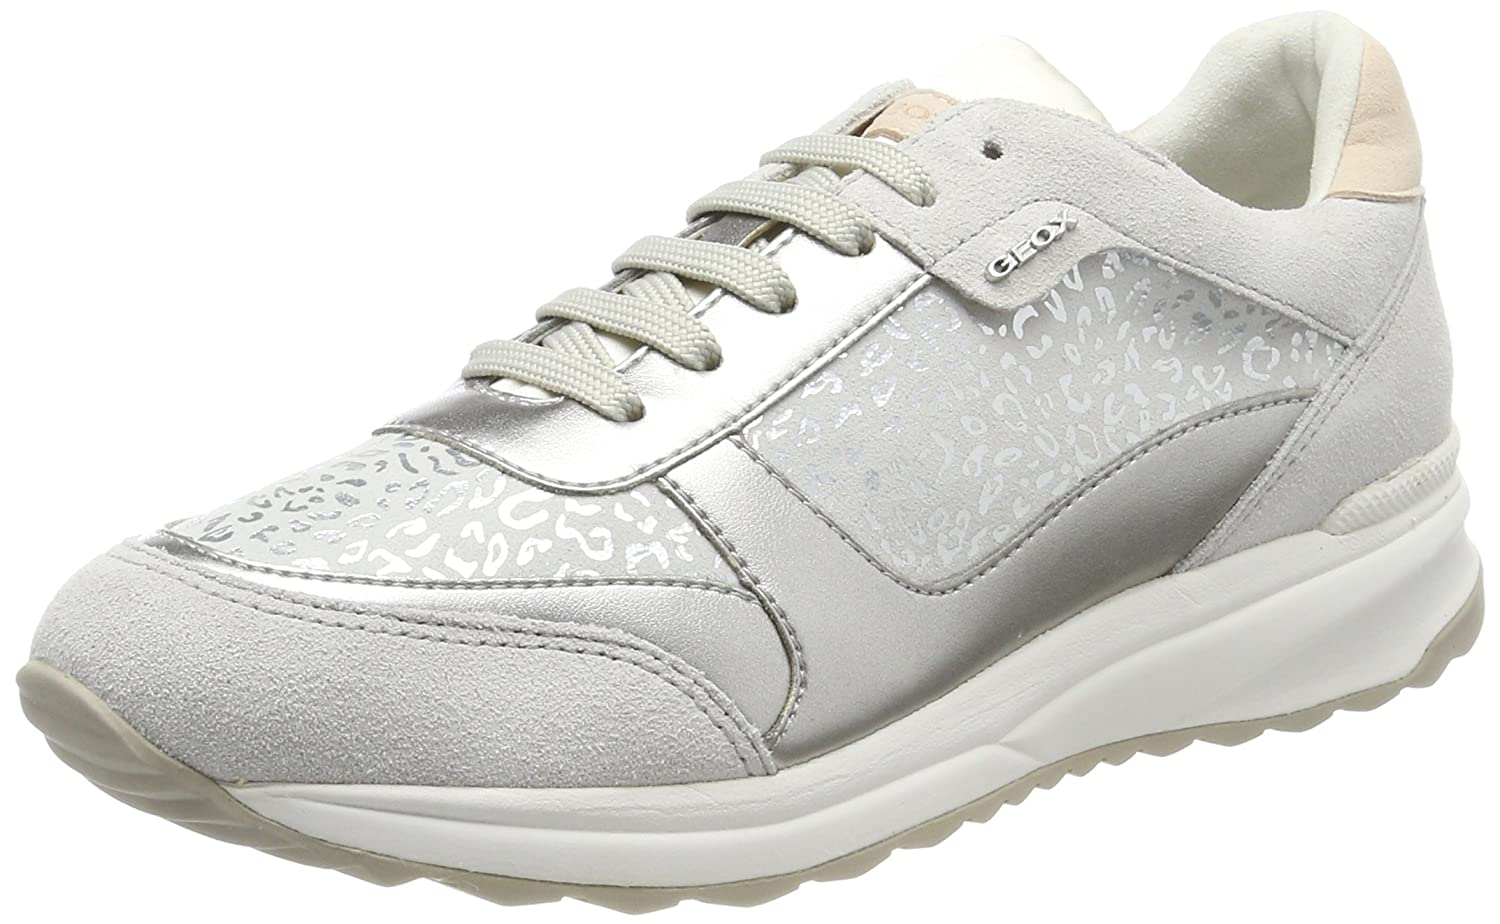 blanco (Off blanco) Geox D Airell C, Hauszapatos para mujer